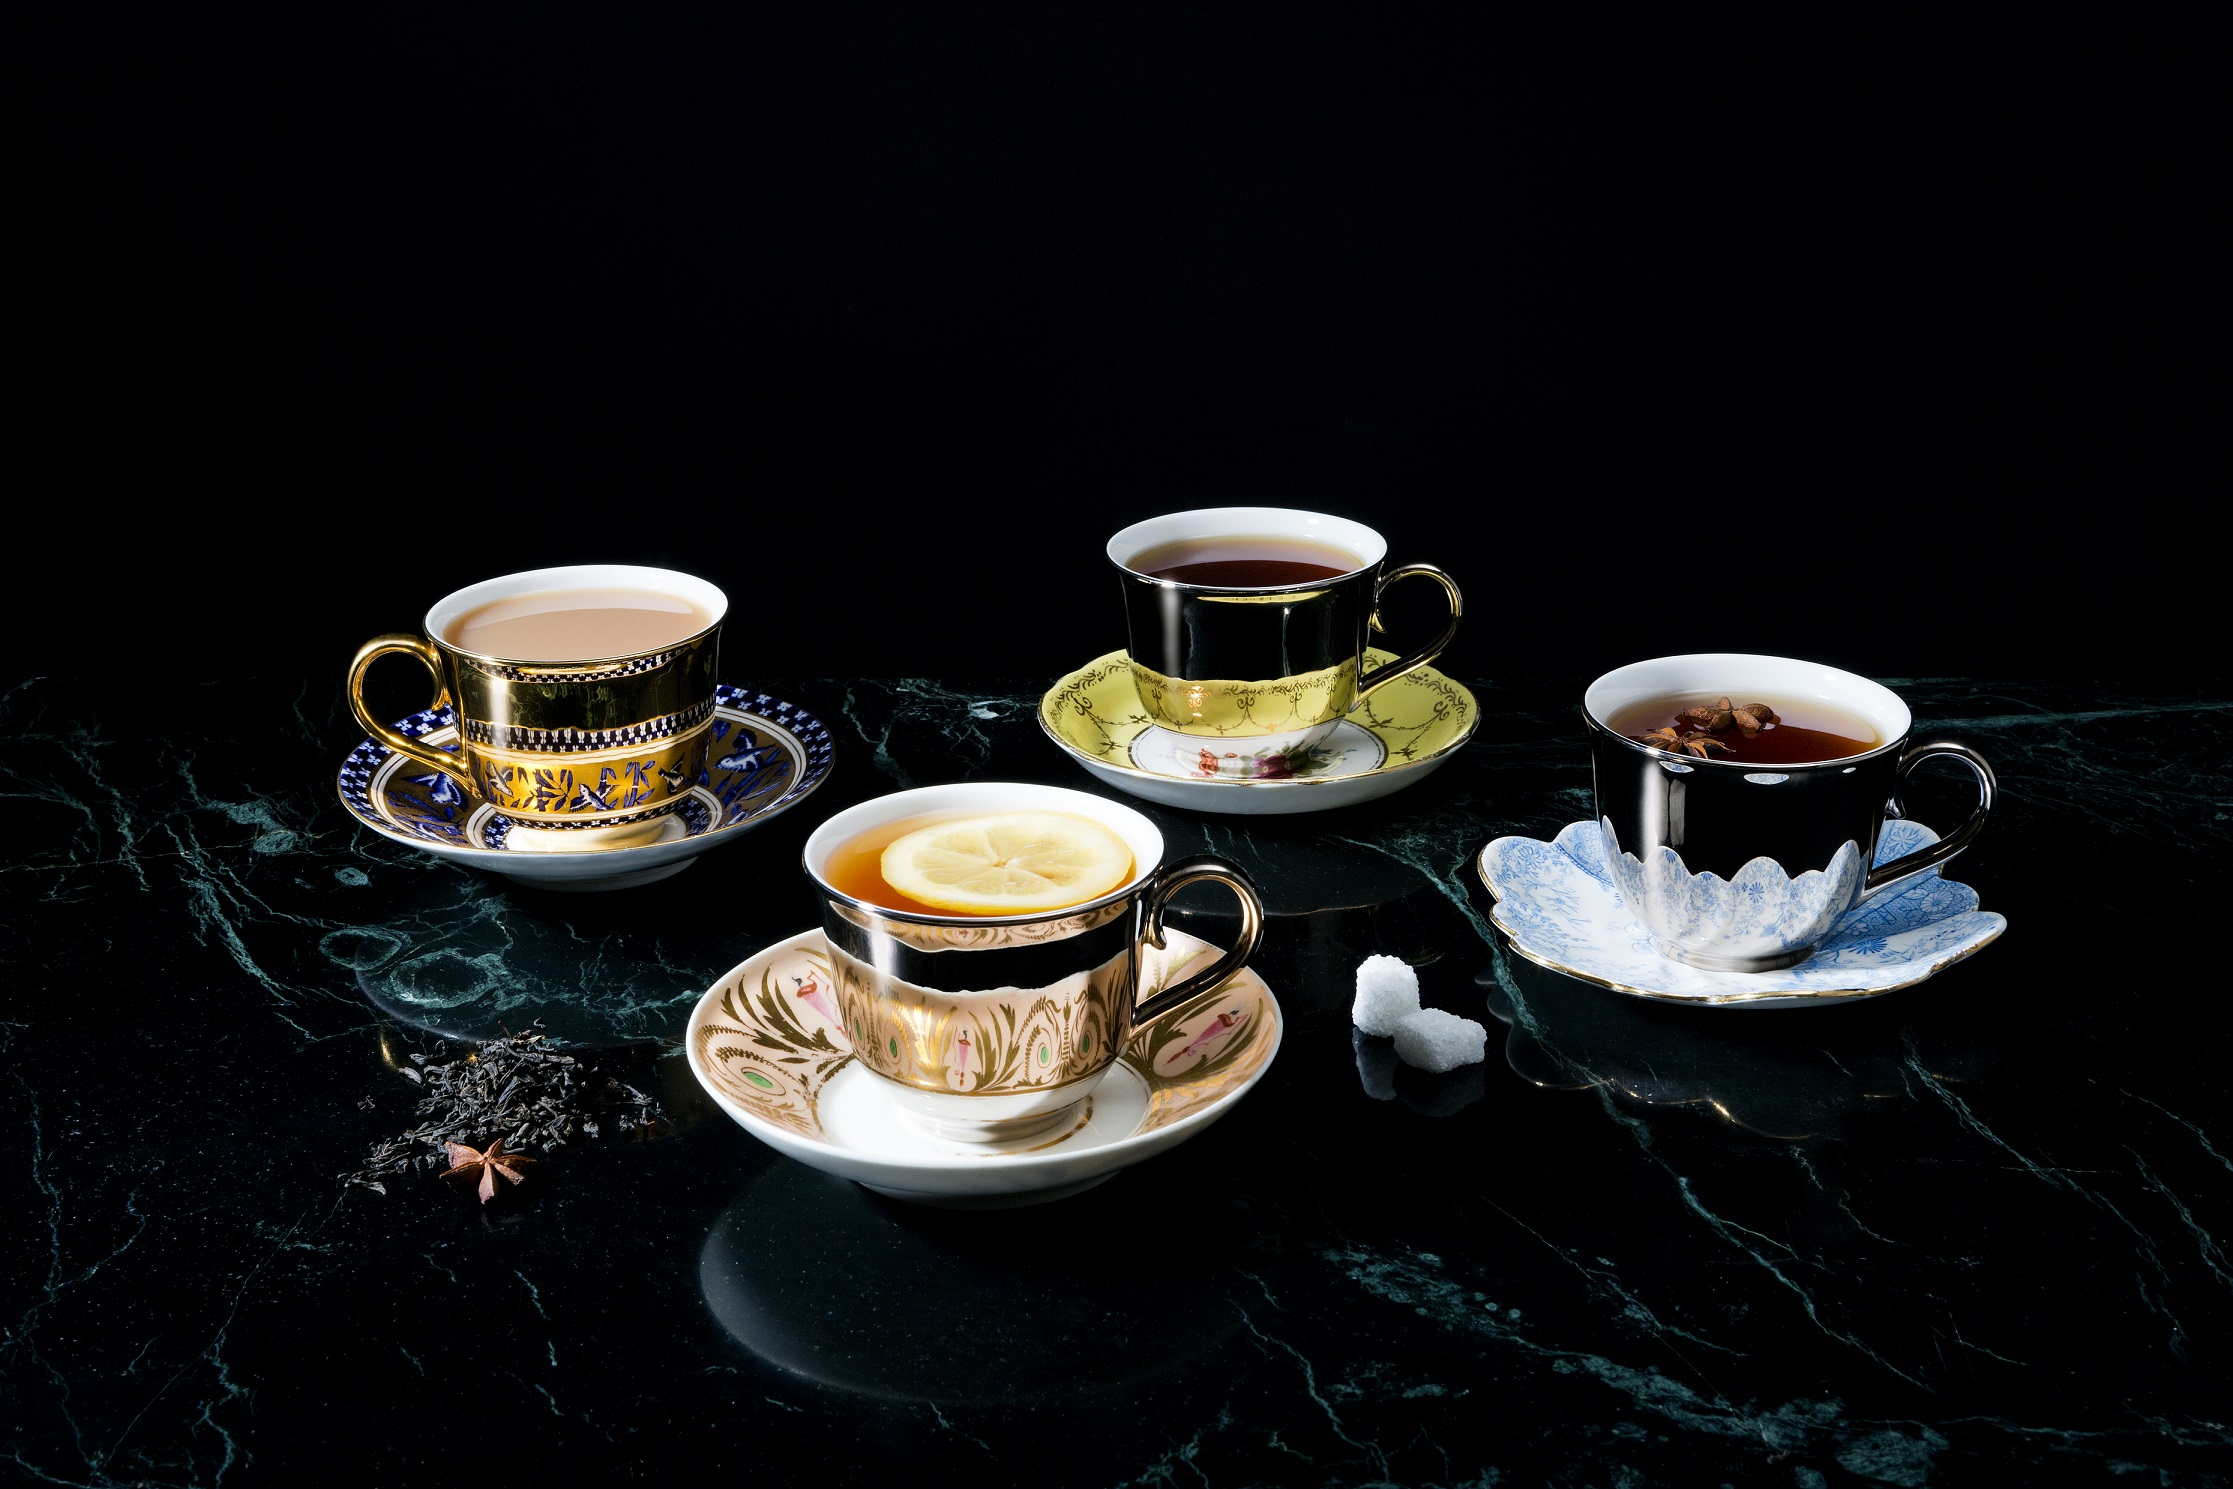 """A photograph of Richard Brendon's Reflect range of tea cups and saucers, accompanying an interview with Richard about the role of heritage in his craftsmanship. Illustrating the FHOLOGUE blog post """"Rather British Heritage"""". Image copyright http://www.richardbrendon.com."""